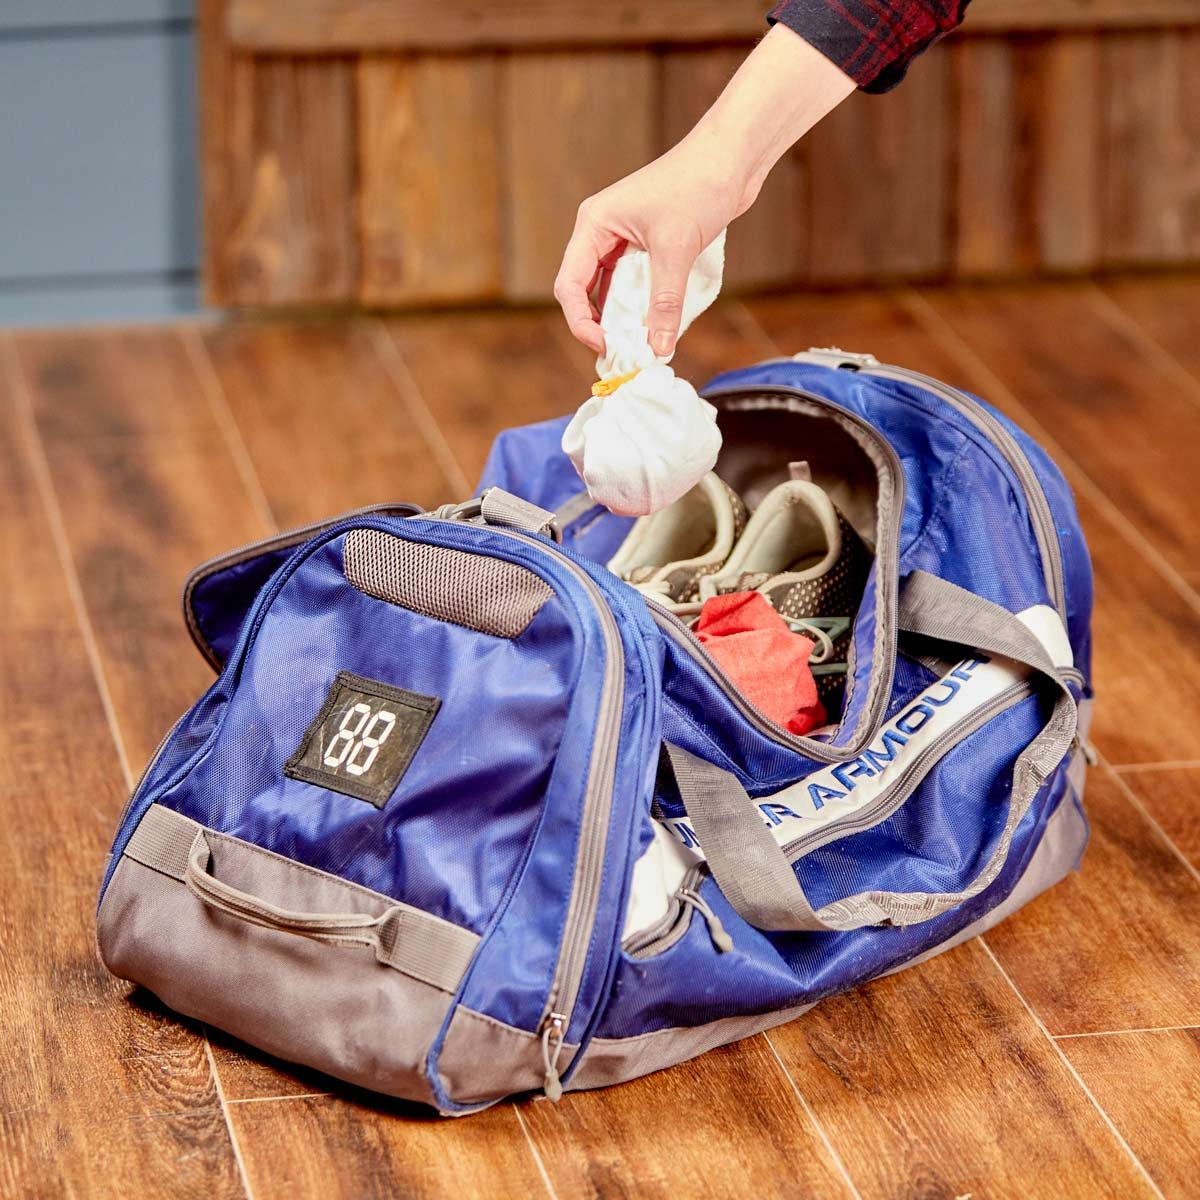 HH gym bag odor control kitty litter